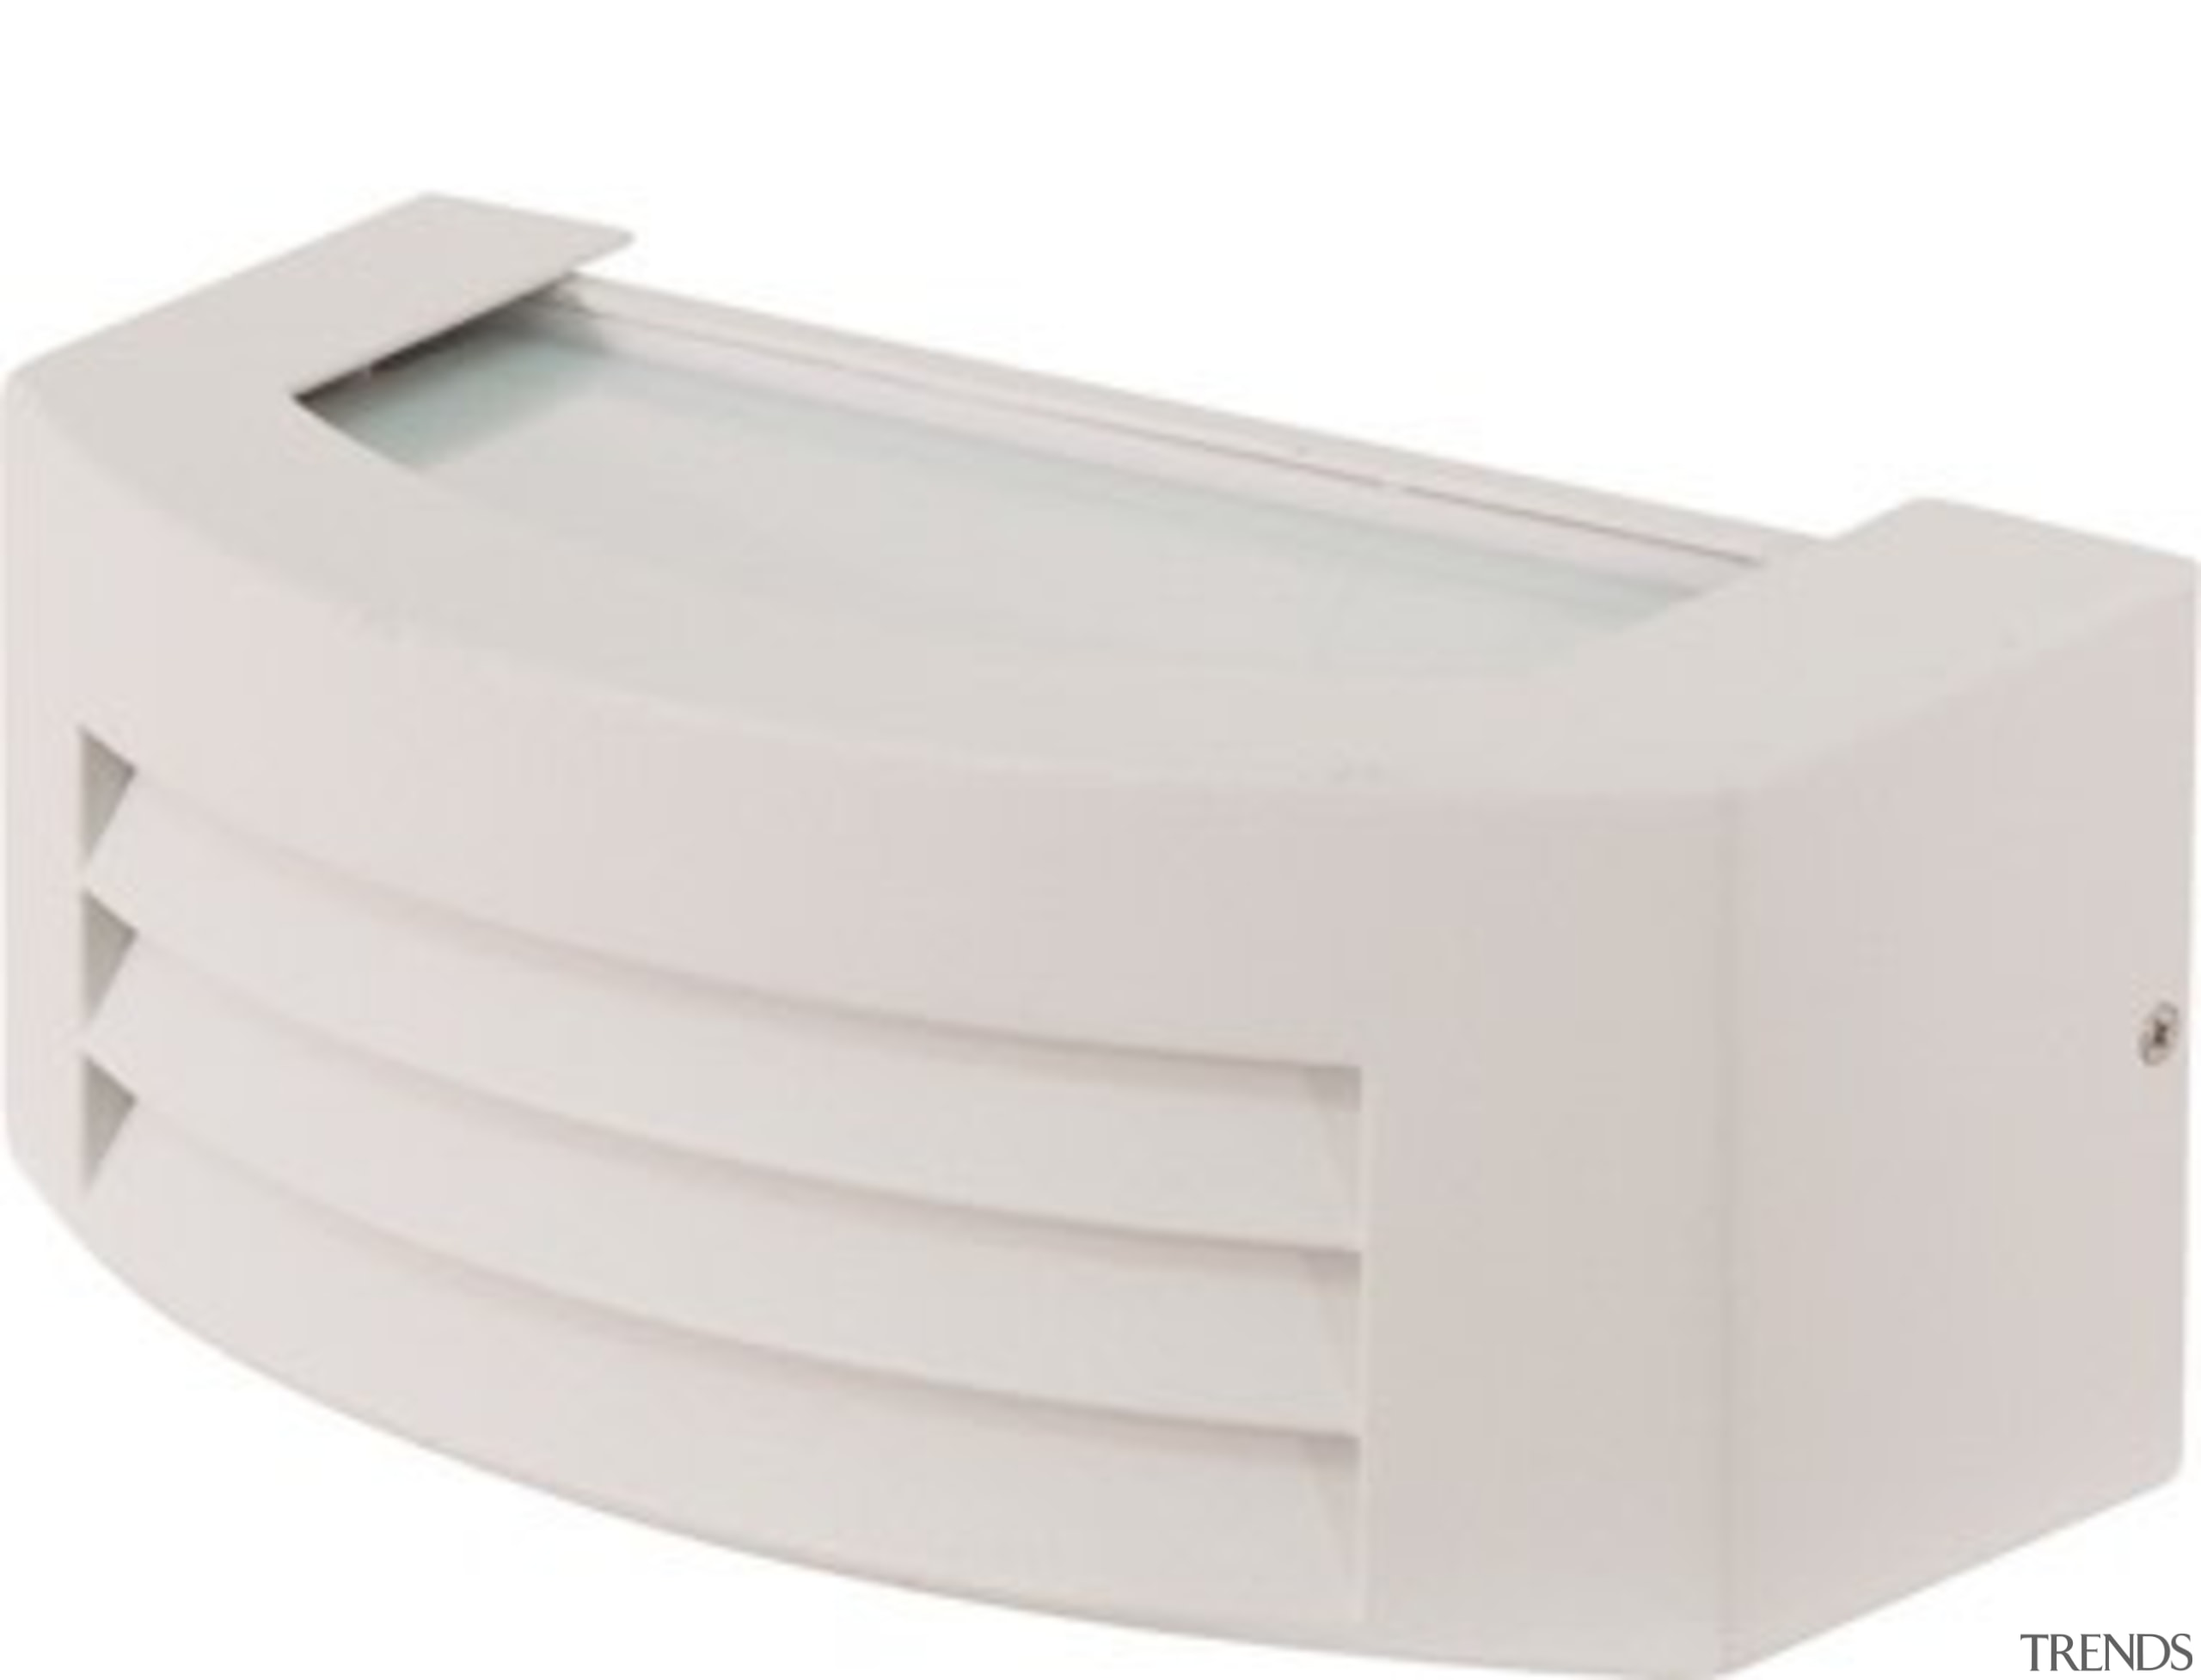 FeaturesA sophisticated contemporary design up / down wall angle, product, product design, white